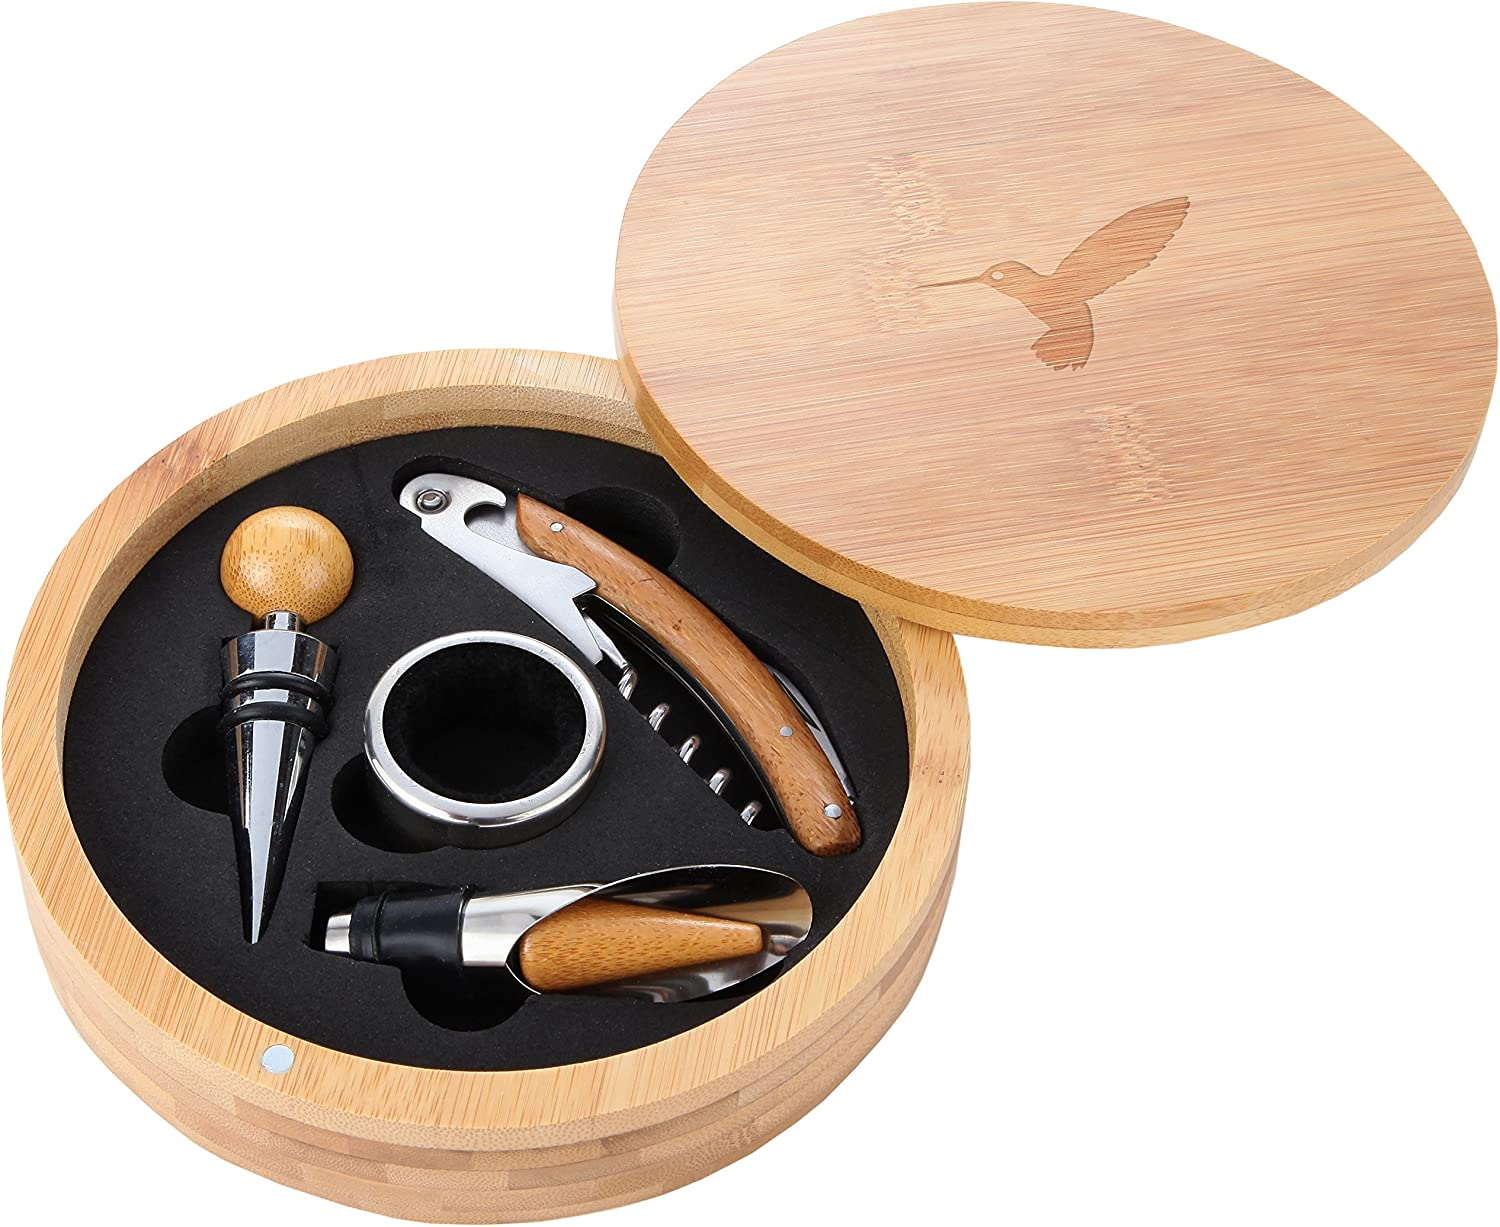 Hummingbird Wooden Accessories Company A High material surprise price is realized Wine Set - Tool Portable